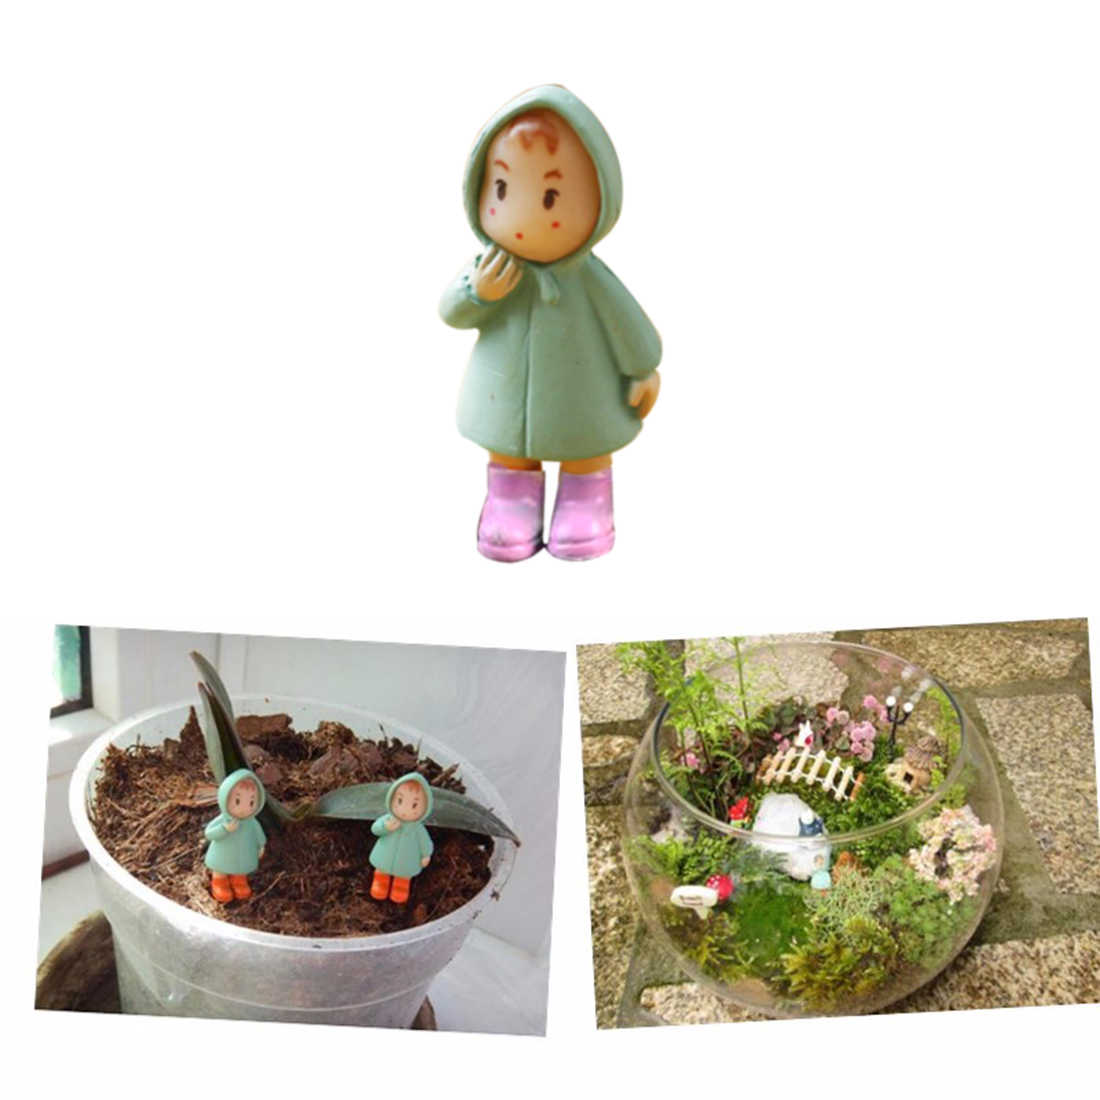 New 1PCS Cute Mini Figurines Miniature Girl Mei Resin Crafts Ornament Fairy Garden Gnomes Moss Terrariums Home Decorations